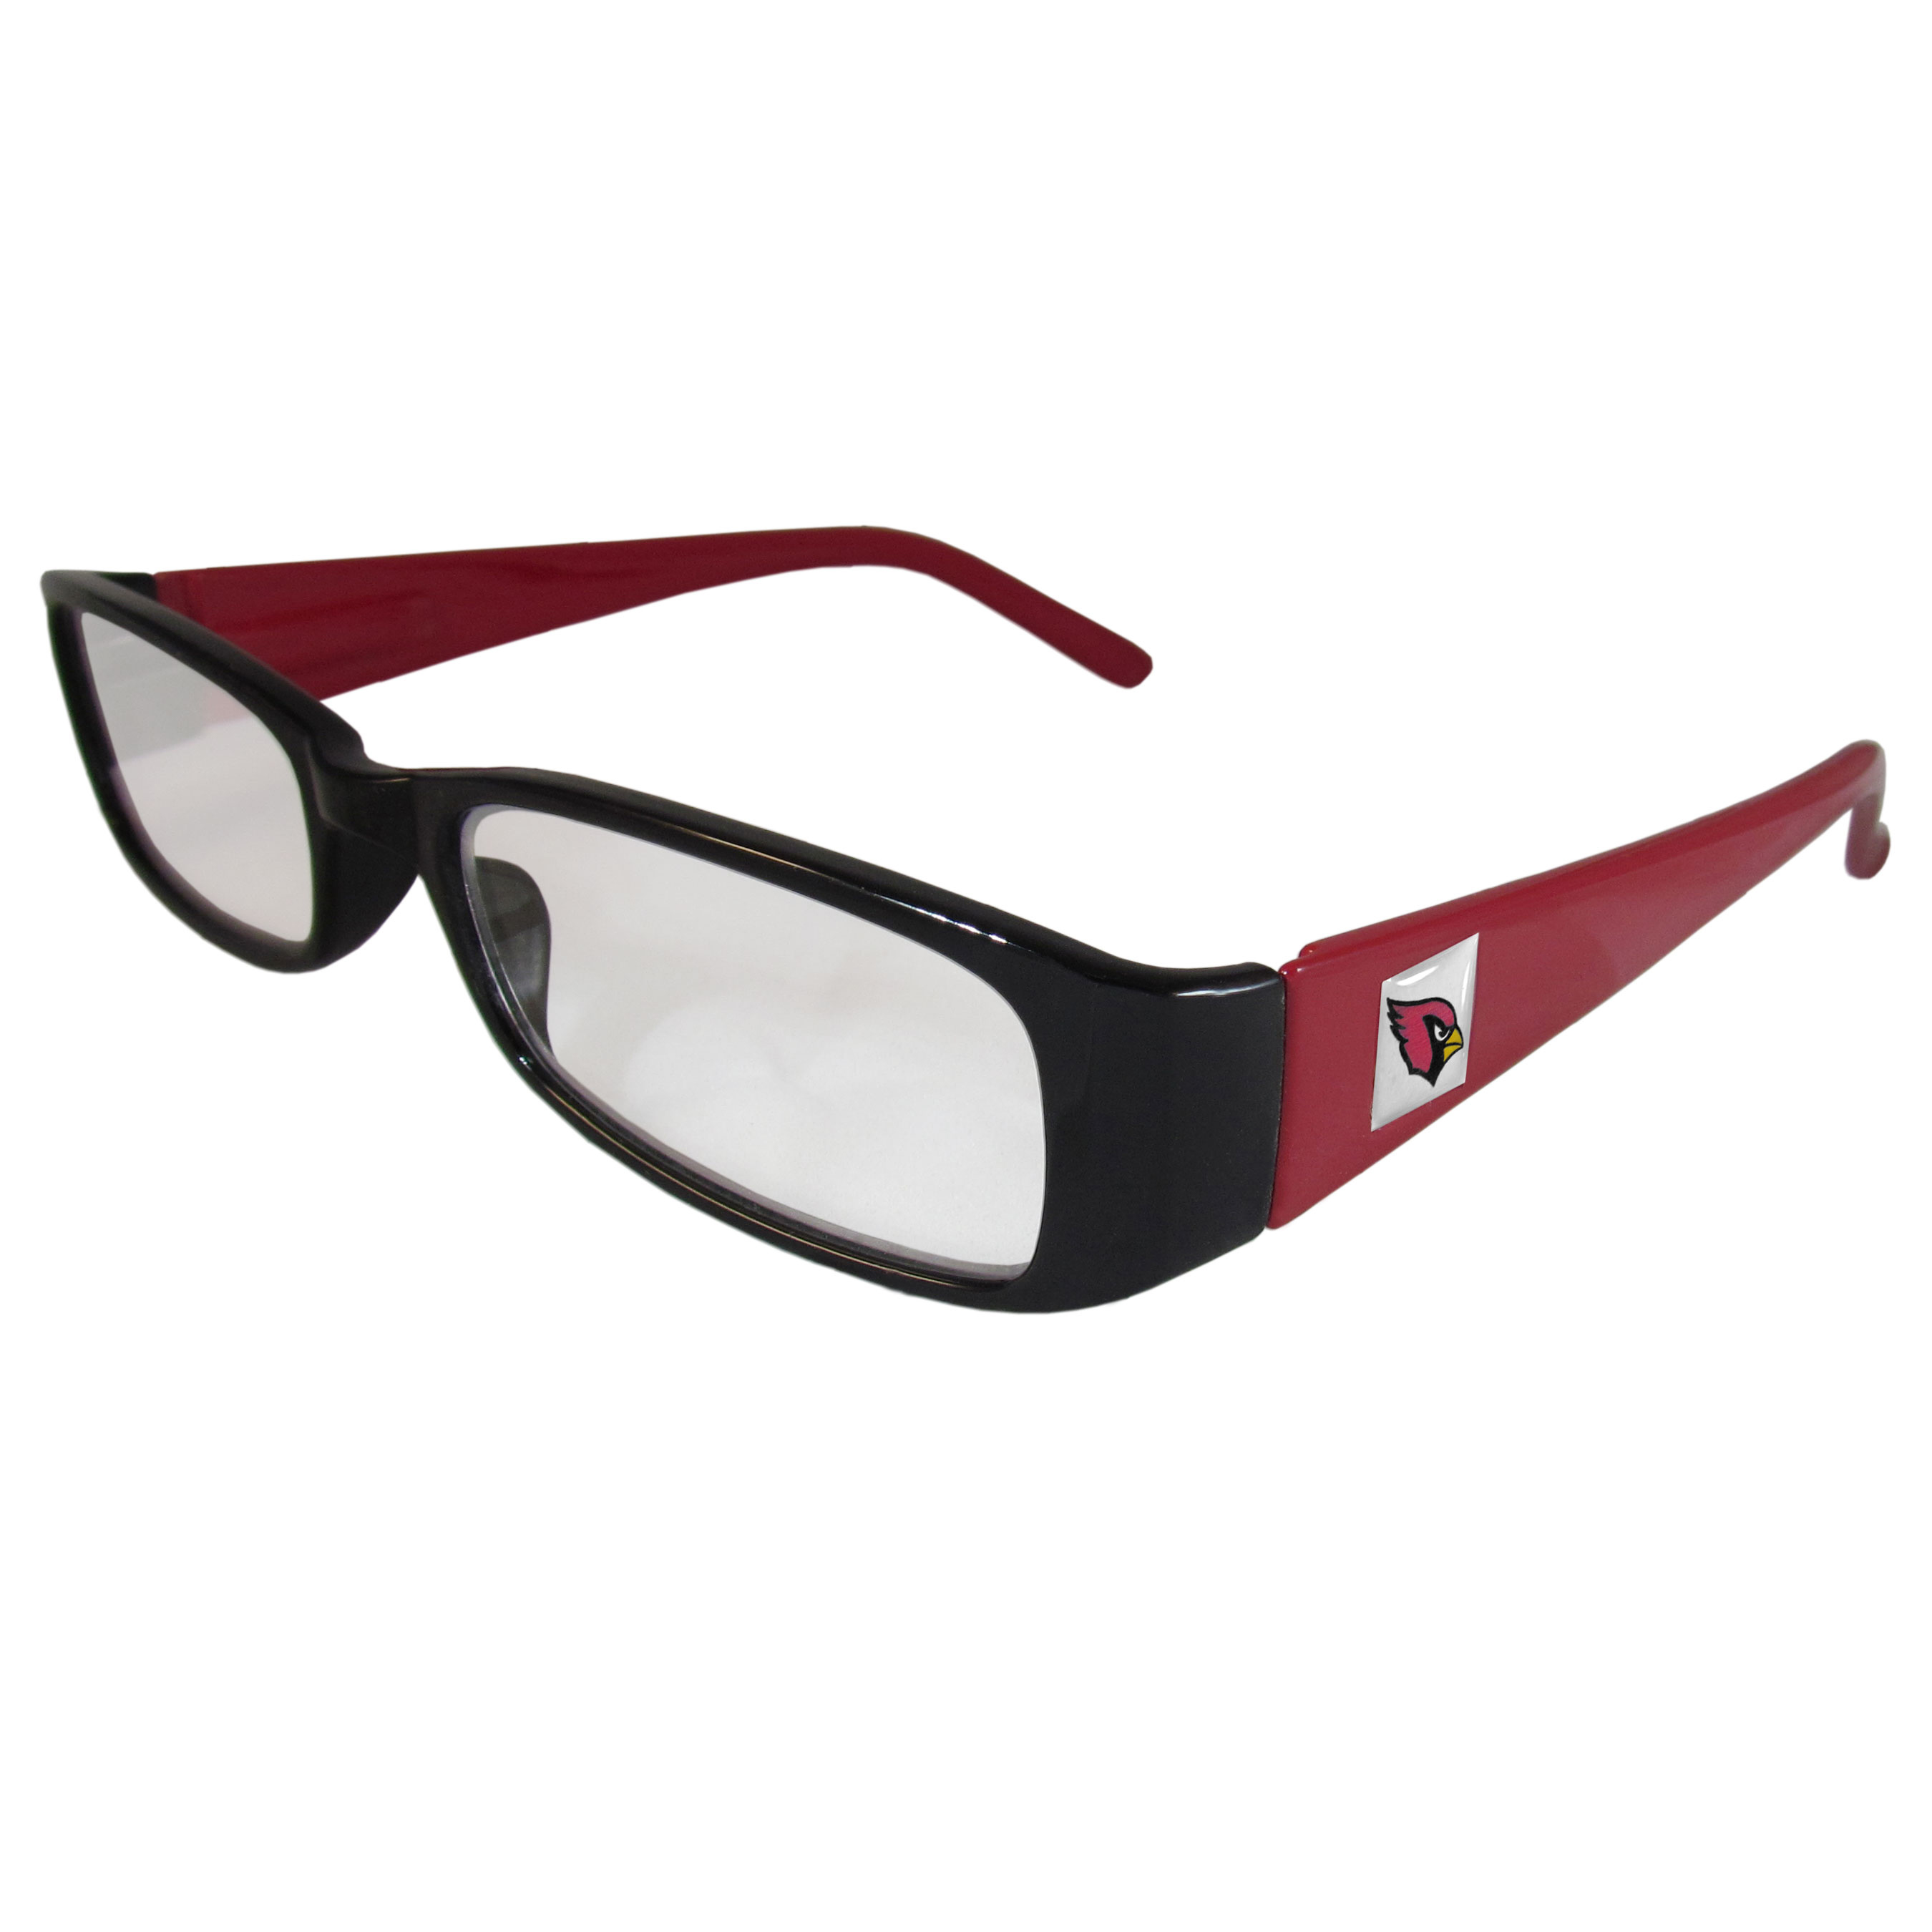 Arizona Cardinals Reading Glasses +1.25 - Our Arizona Cardinals reading glasses are 5.25 inches wide and feature the team logo on each arm. Magnification Power 1.25